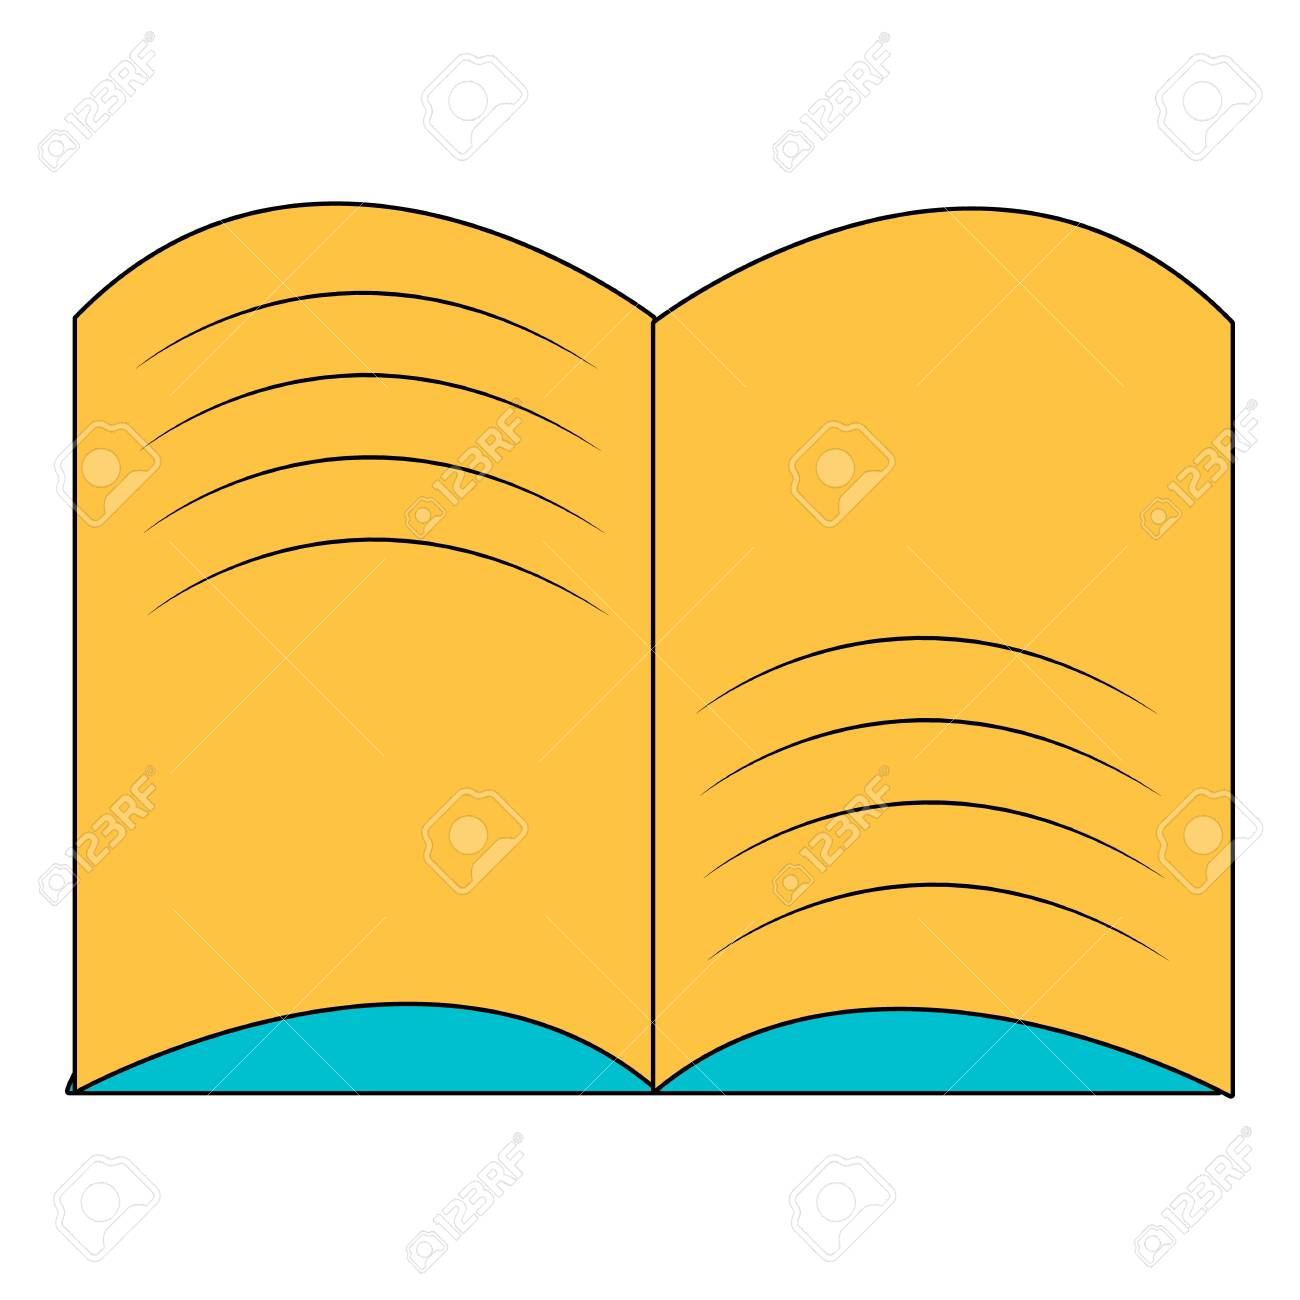 old open magic book icon cartoon style royalty free cliparts rh 123rf com